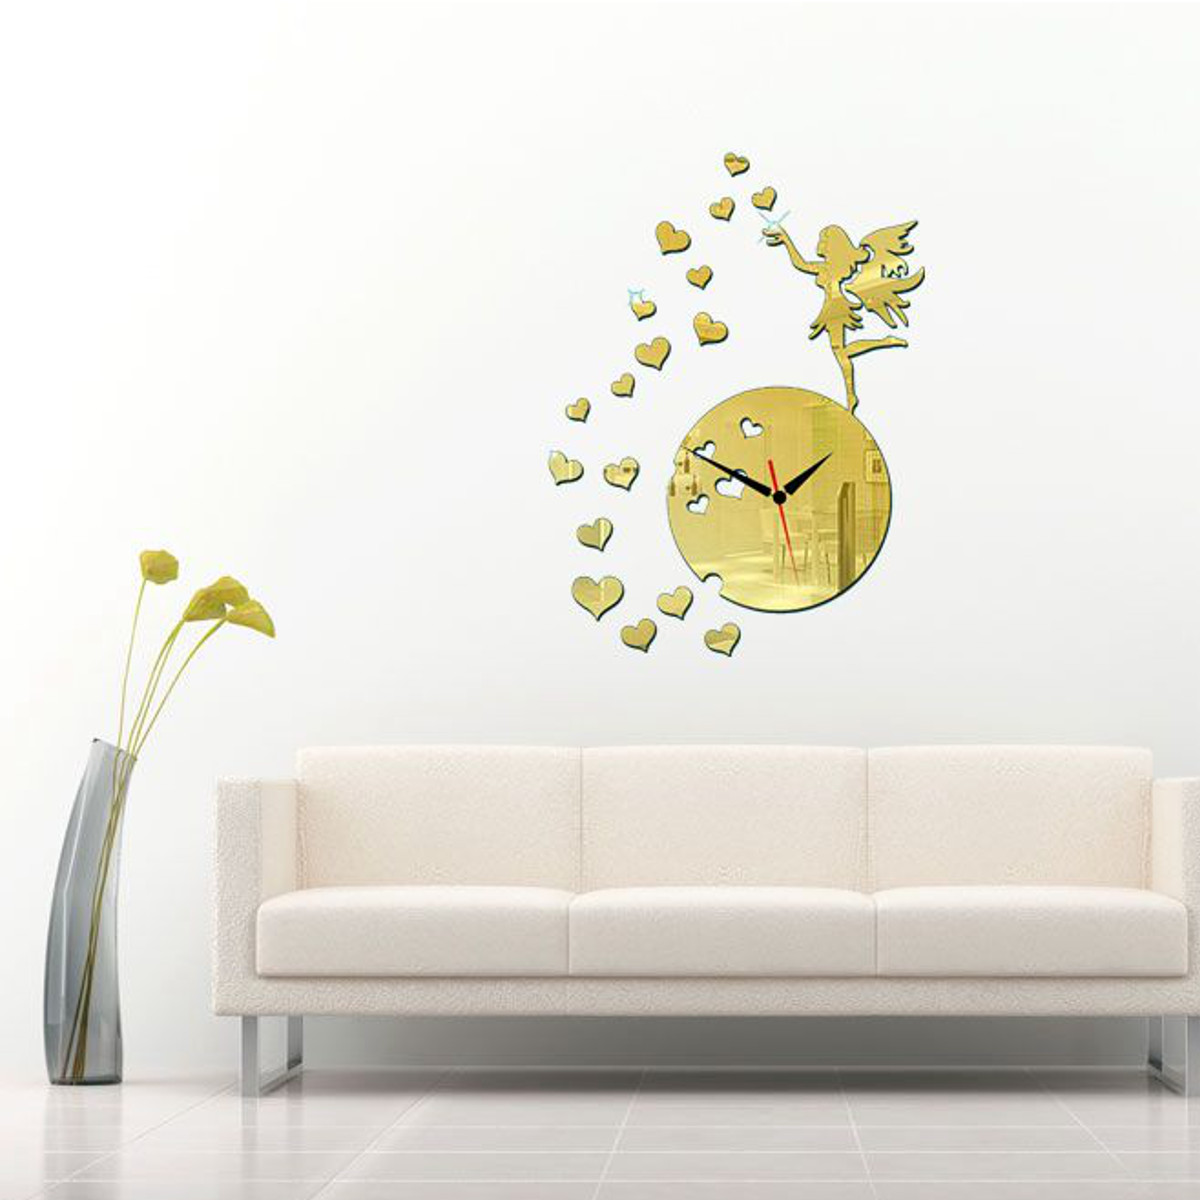 Diy 3d modern acrylic fairy heart mirror wall clock home for 3d acrylic mirror wall sticker clock decoration decor